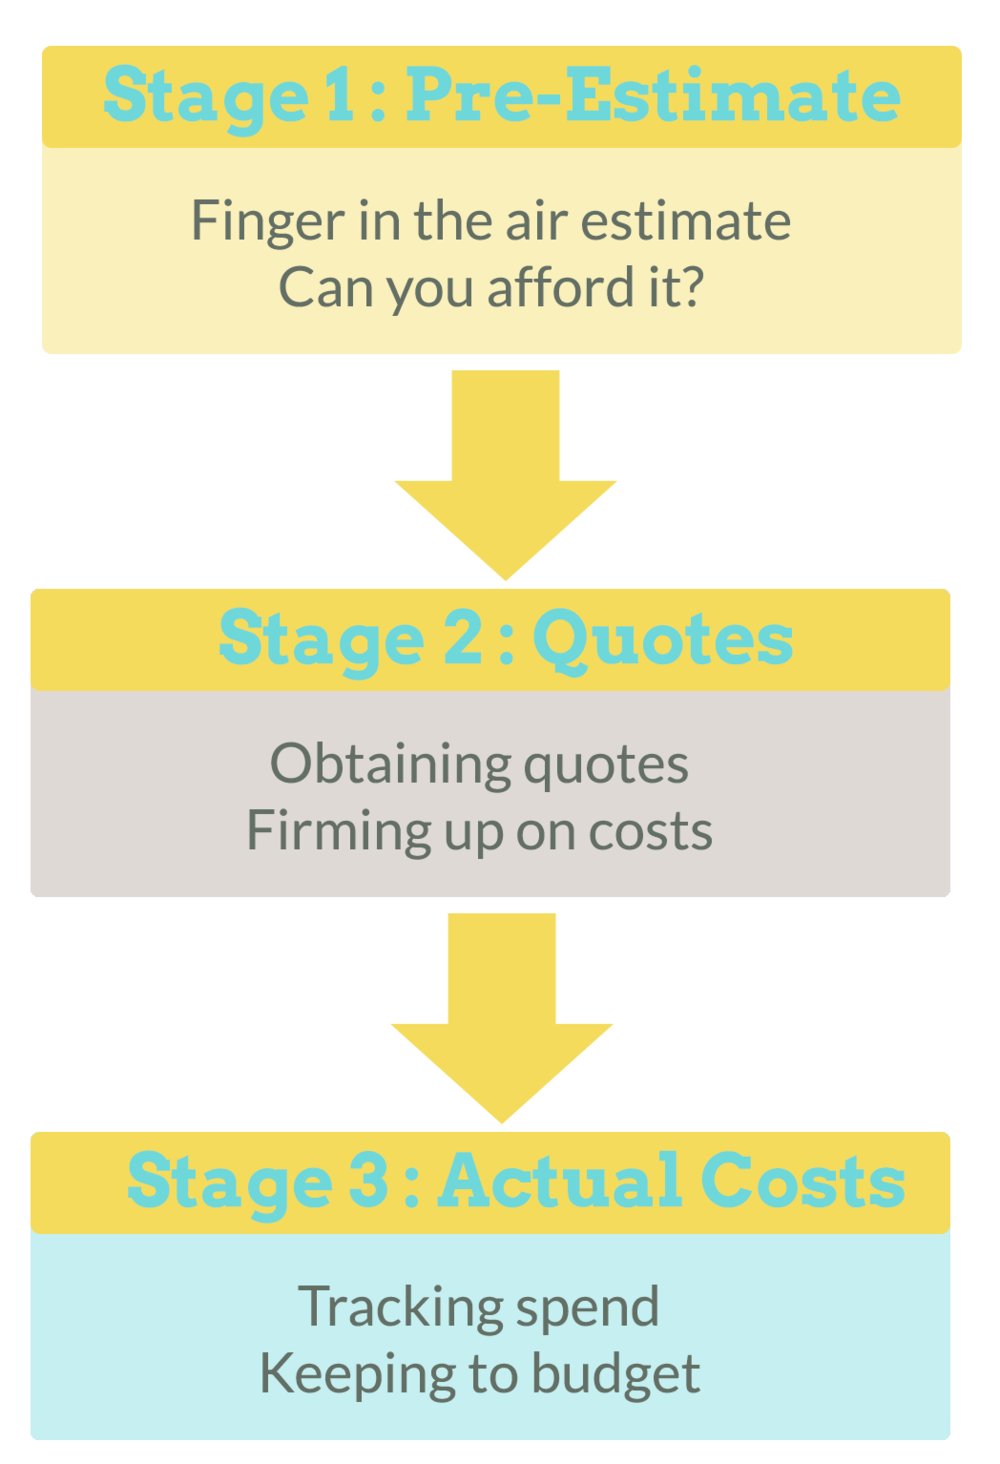 budgeting stages.png